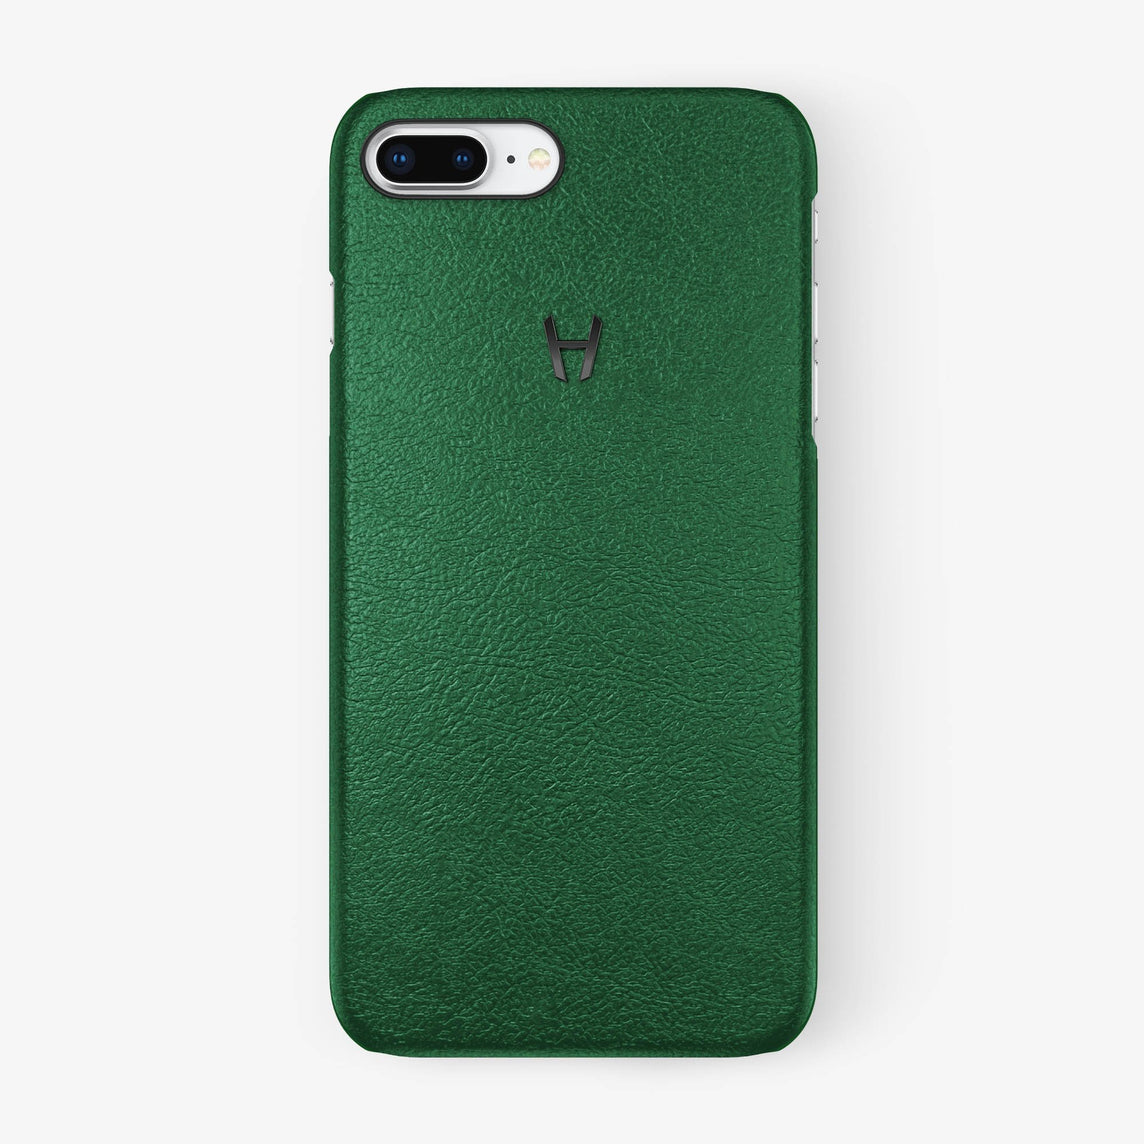 Calfskin [iPhone Case] [model:iphone-7p-8p-case] [colour:green] [finishing:black]